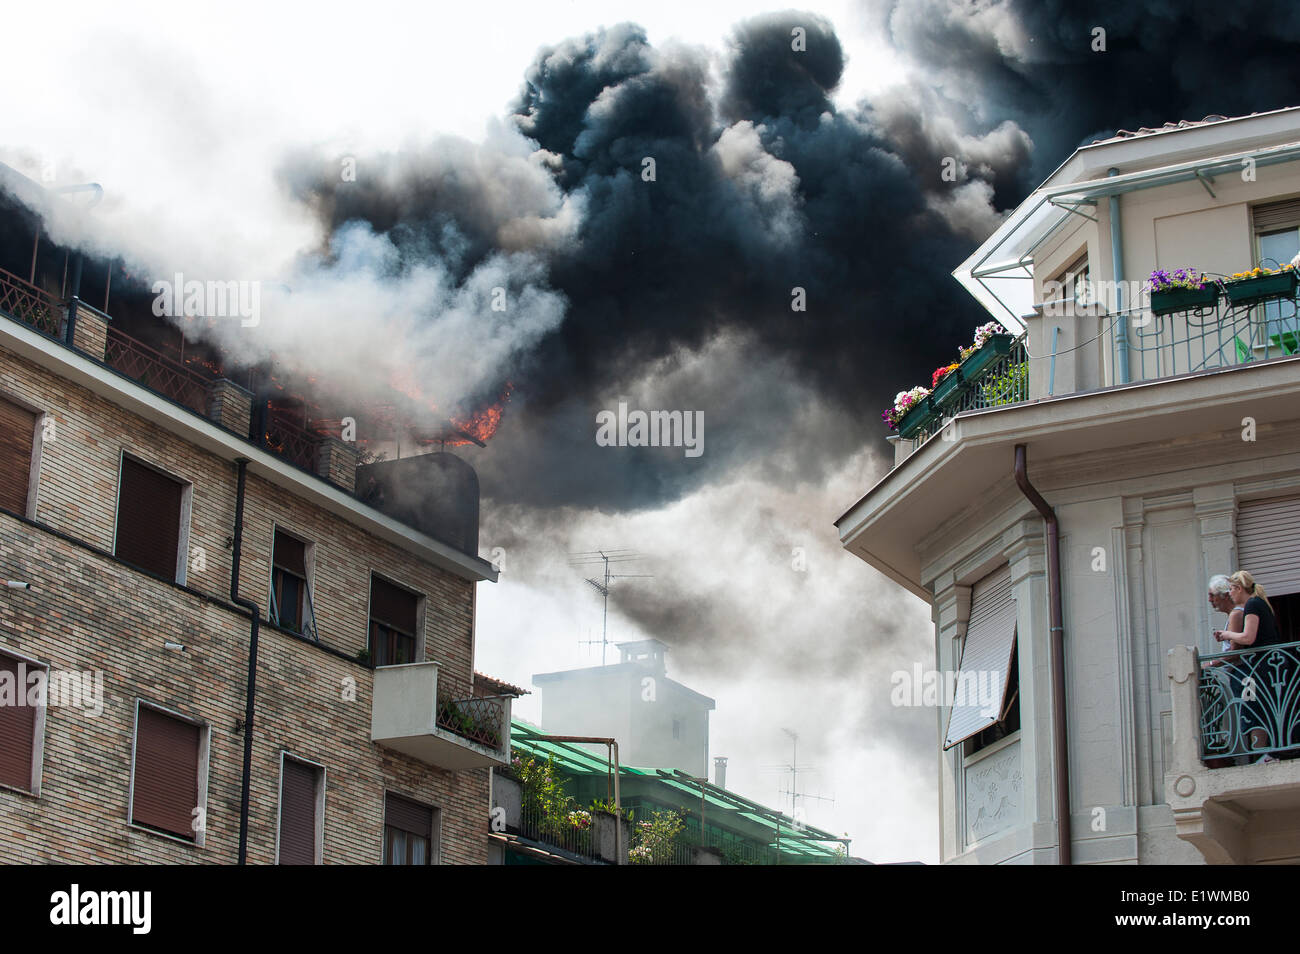 Italy Piedmont Turin A fire  in Via Nizza 90 Credit:  Realy Easy Star/Alamy Live News - Stock Image